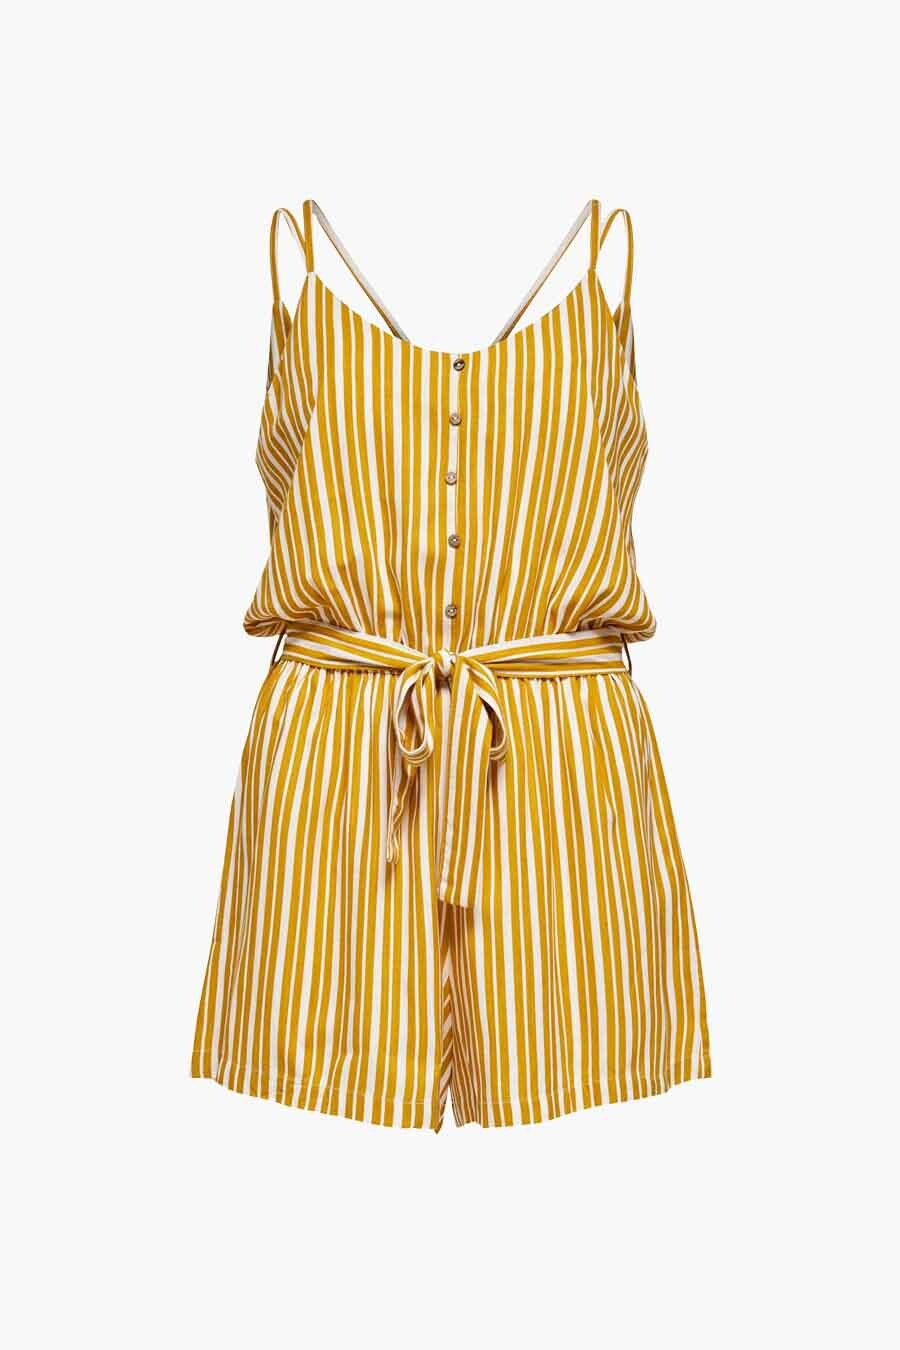 ONLY® Playsuit, Multicolor, Dames, Maat: 42